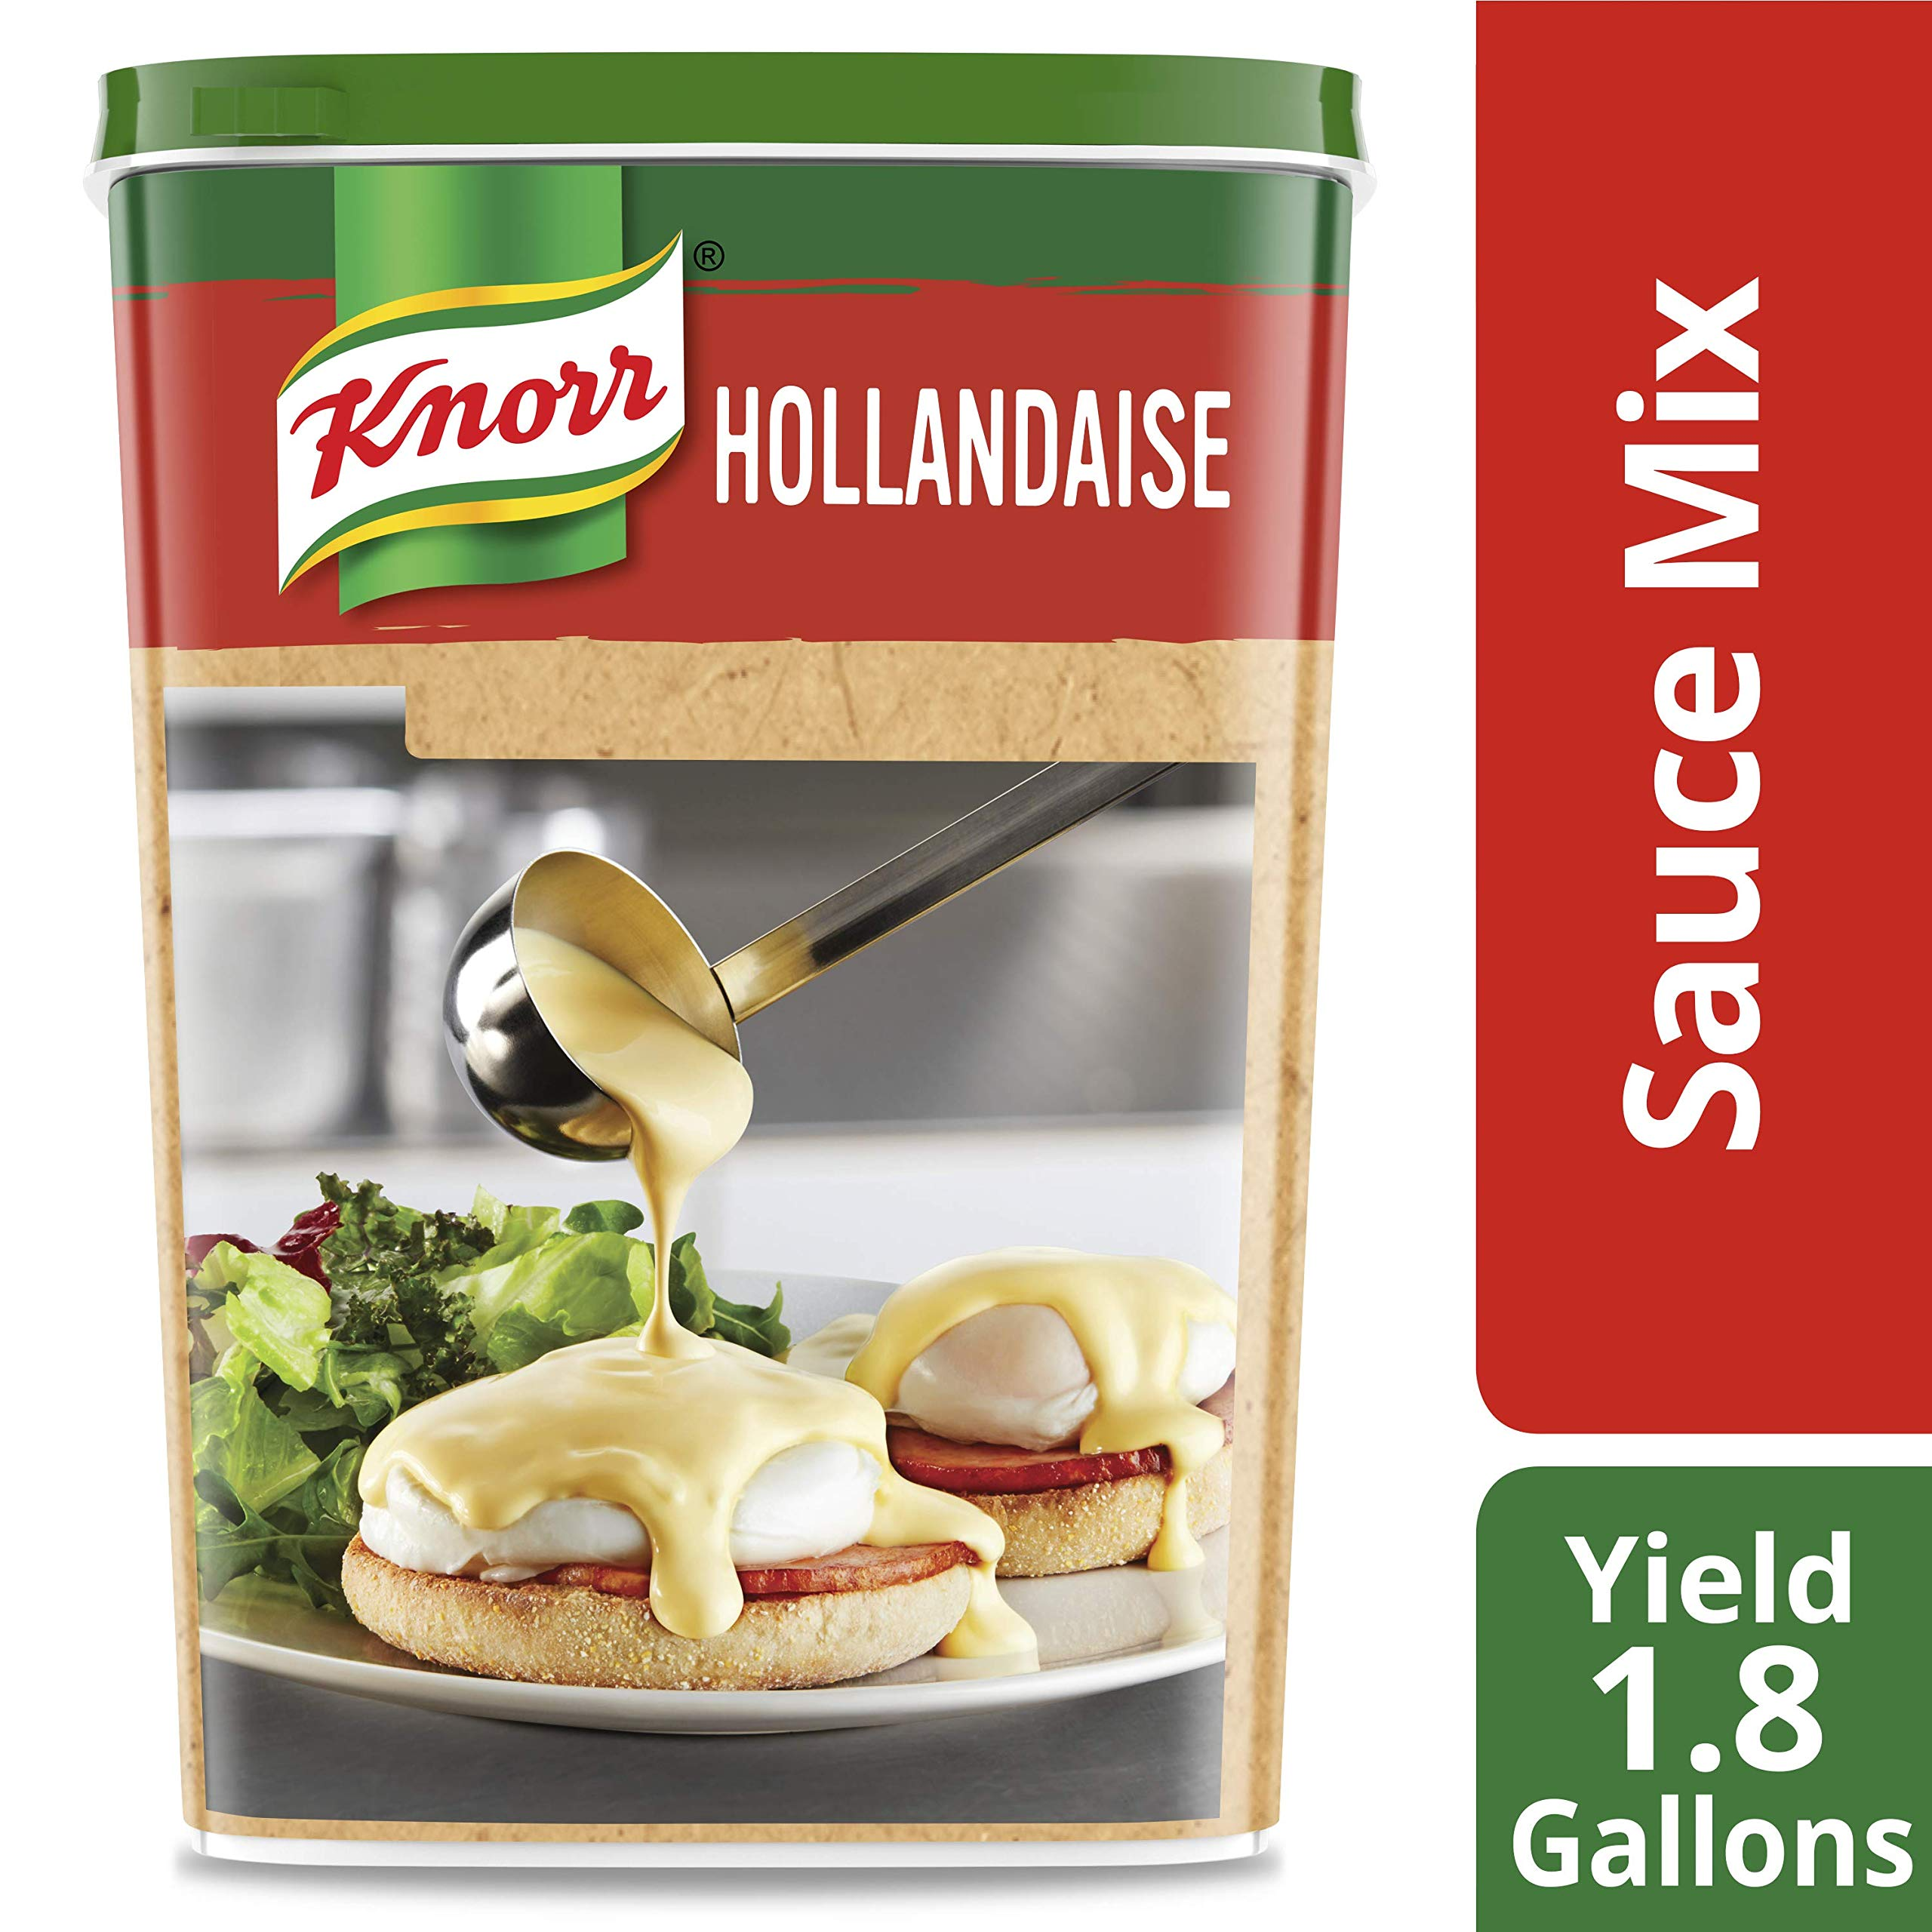 Knorr Professional Ultimate Hollandaise Sauce Mix Vegetarian, Gluten Free, No Artificial Flavors or Preservatives, No added MSG, 30.2 oz, Pack of 4 by Knorr